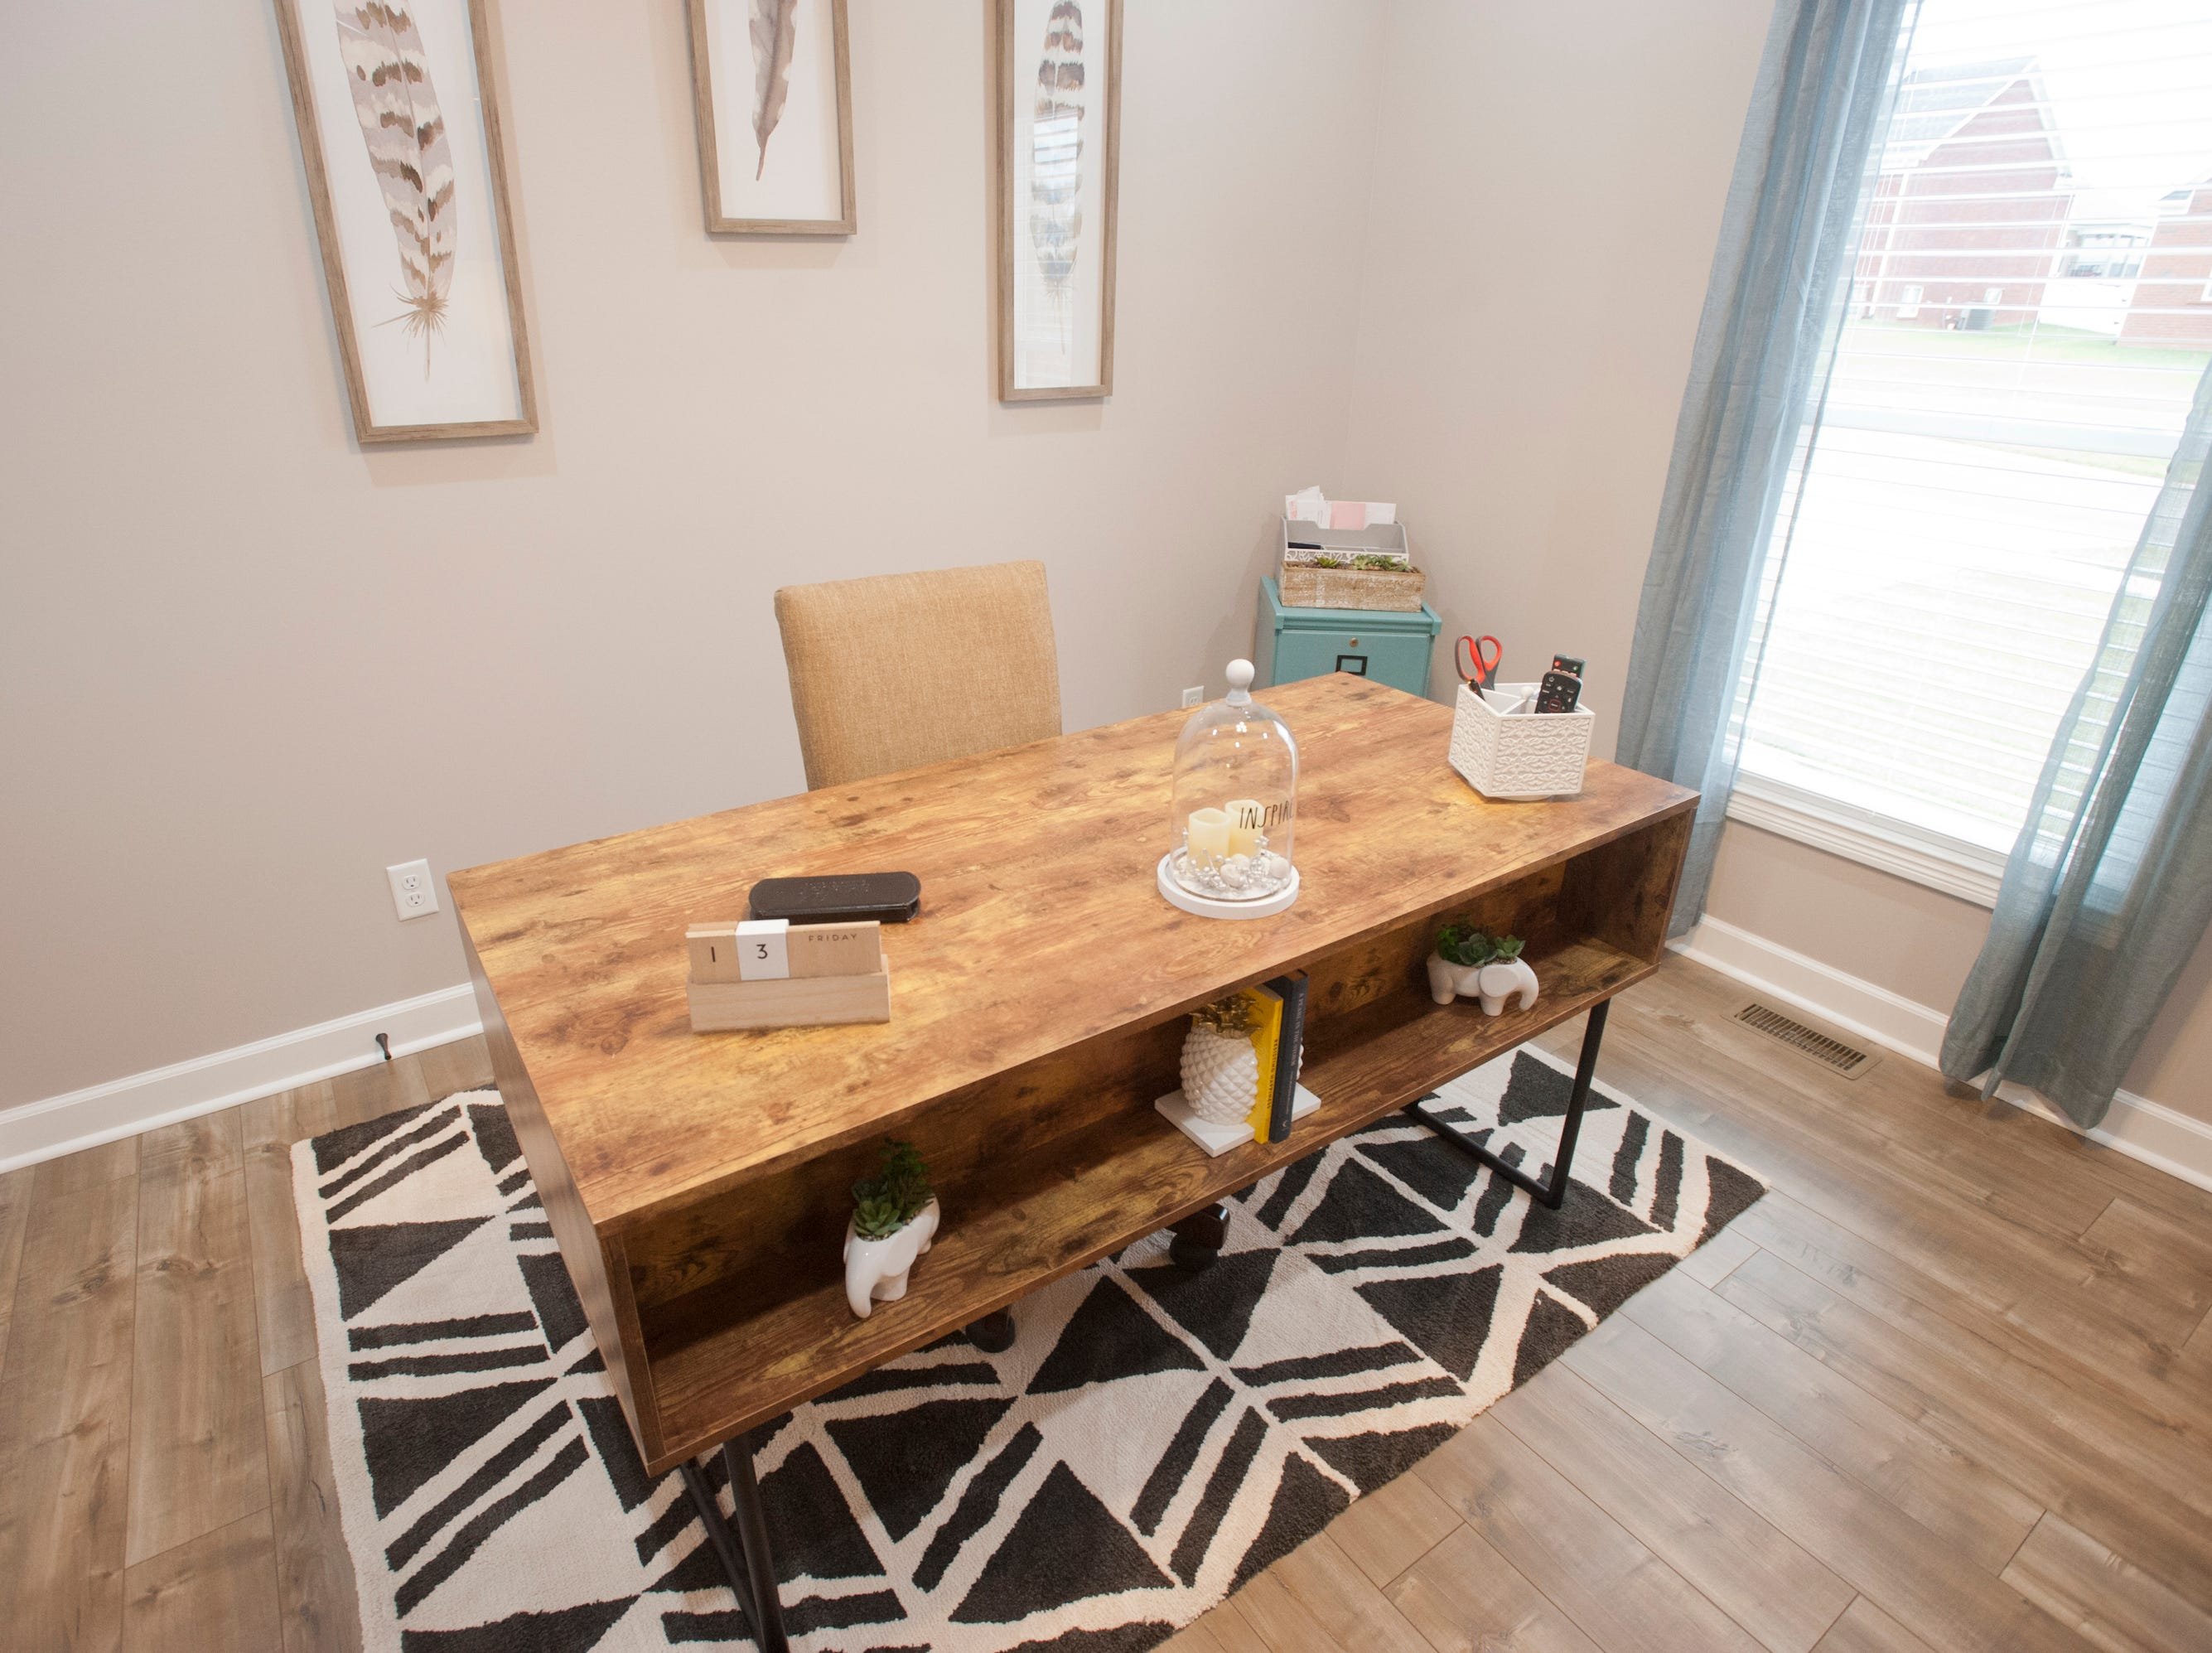 The first-floor office includes an office desk whose front displays artwork. Sara Bell bought the desk at the I Love Fabs furniture store.